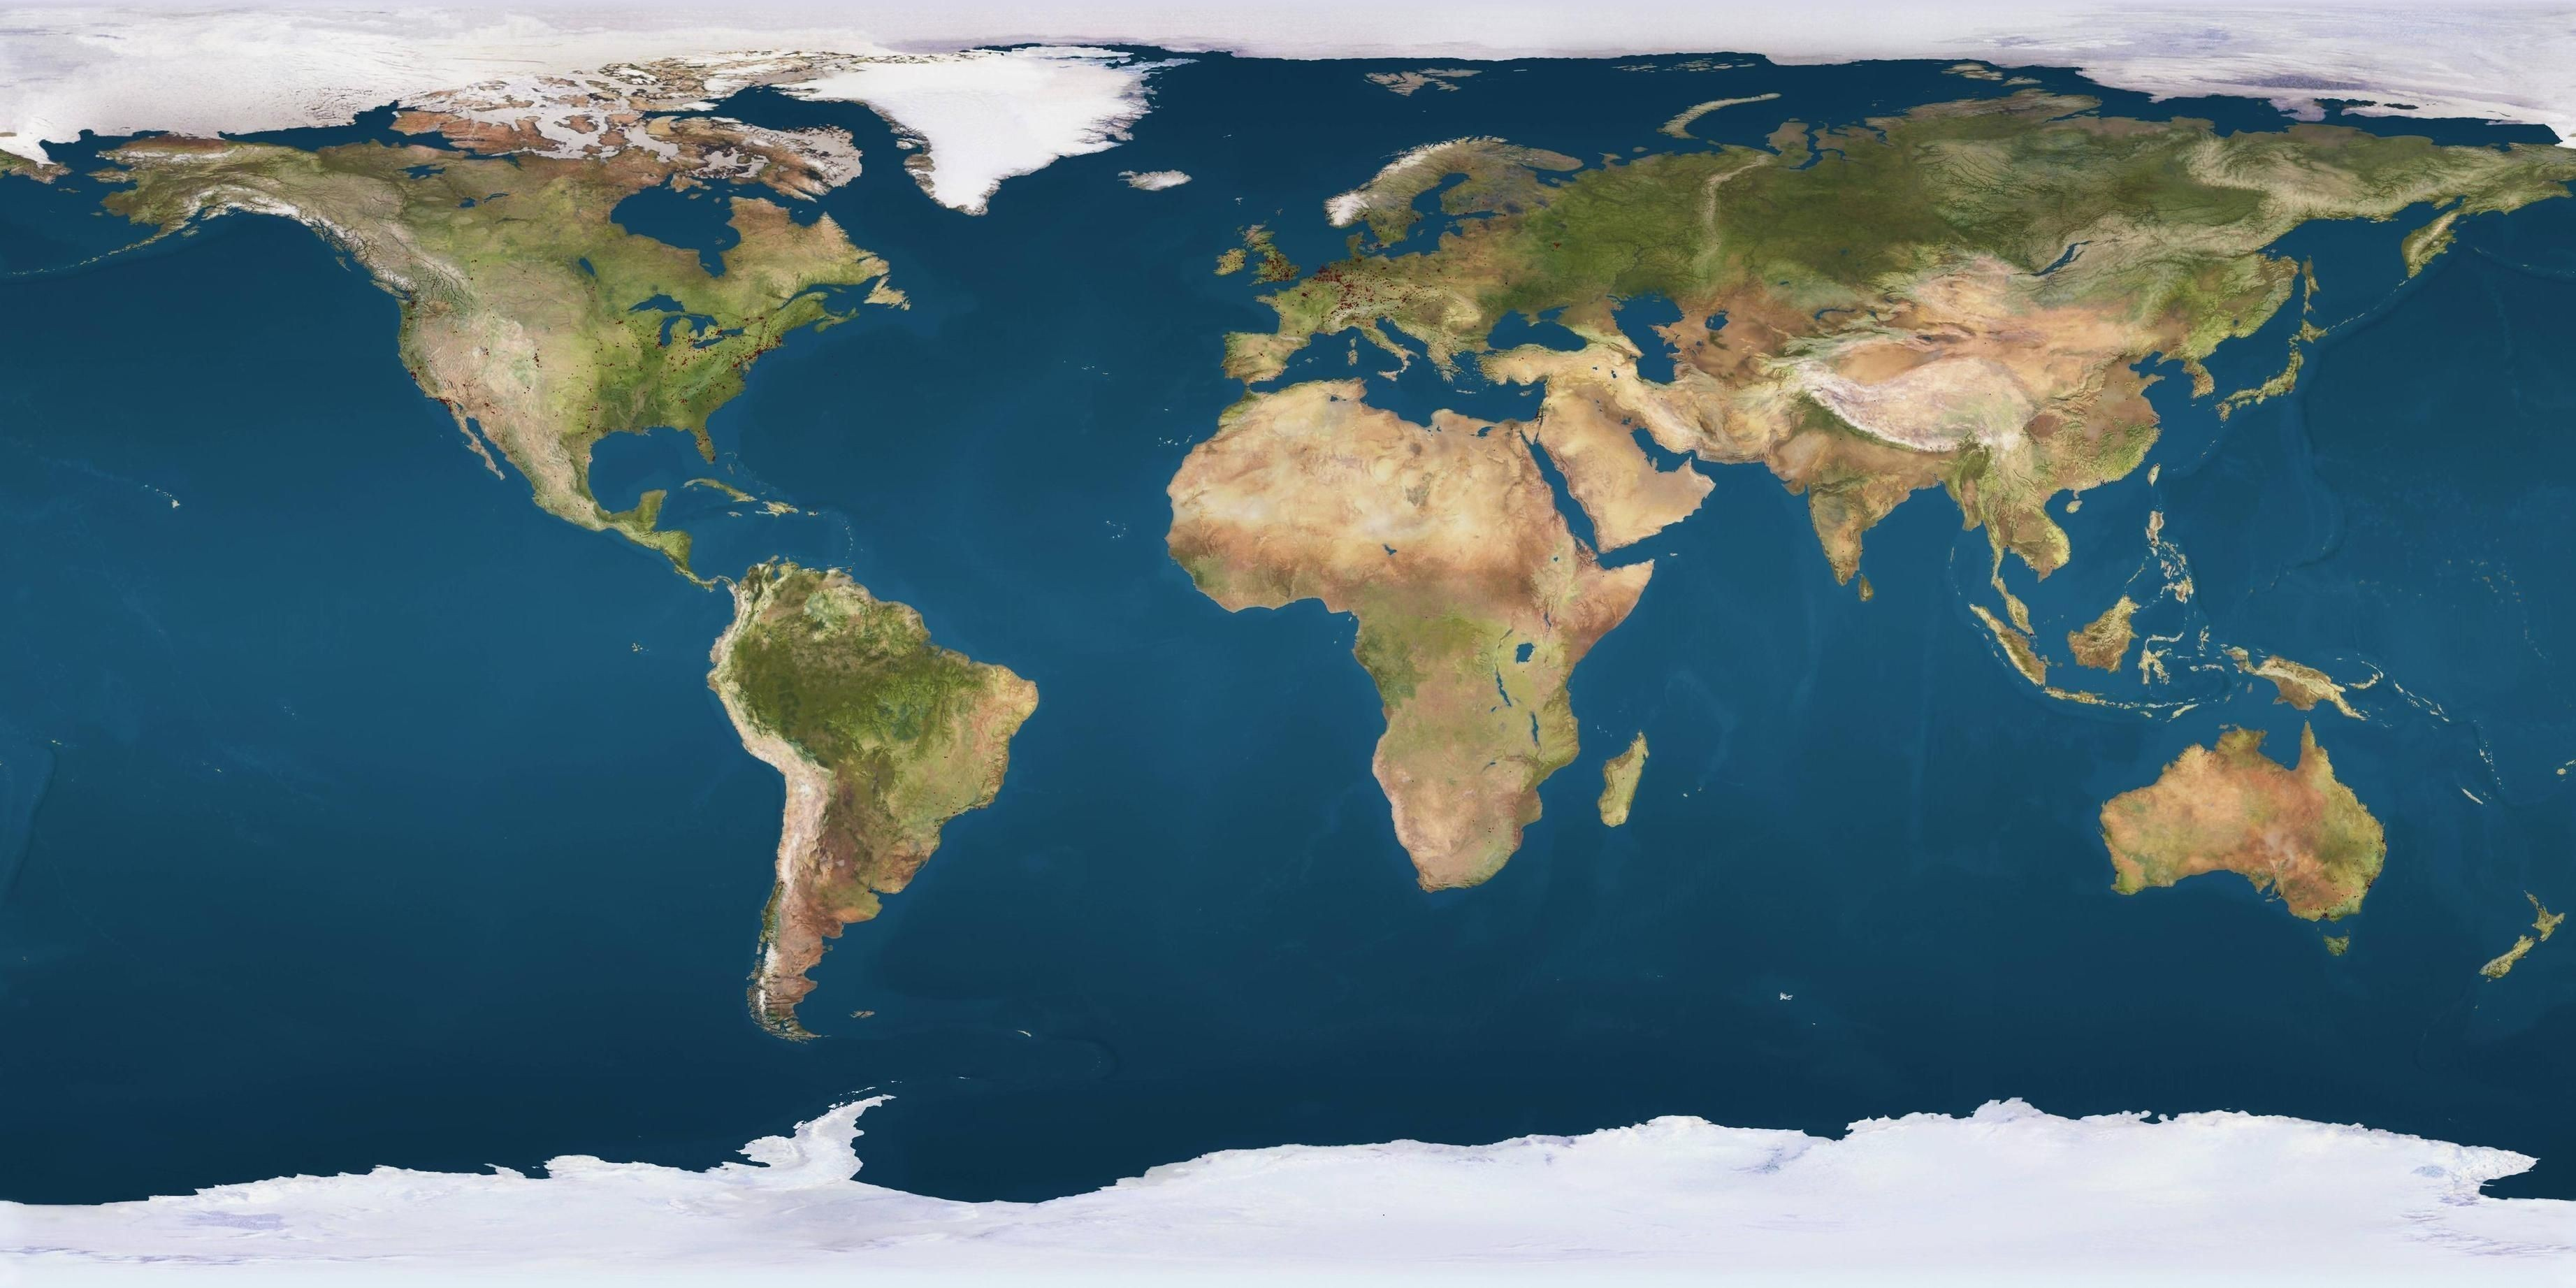 World map wallpapers high resolution 66 background pictures 3686x1843 blank political world map high resolution fresh world map wallpapers high resolution wallpaper cave with gumiabroncs Images